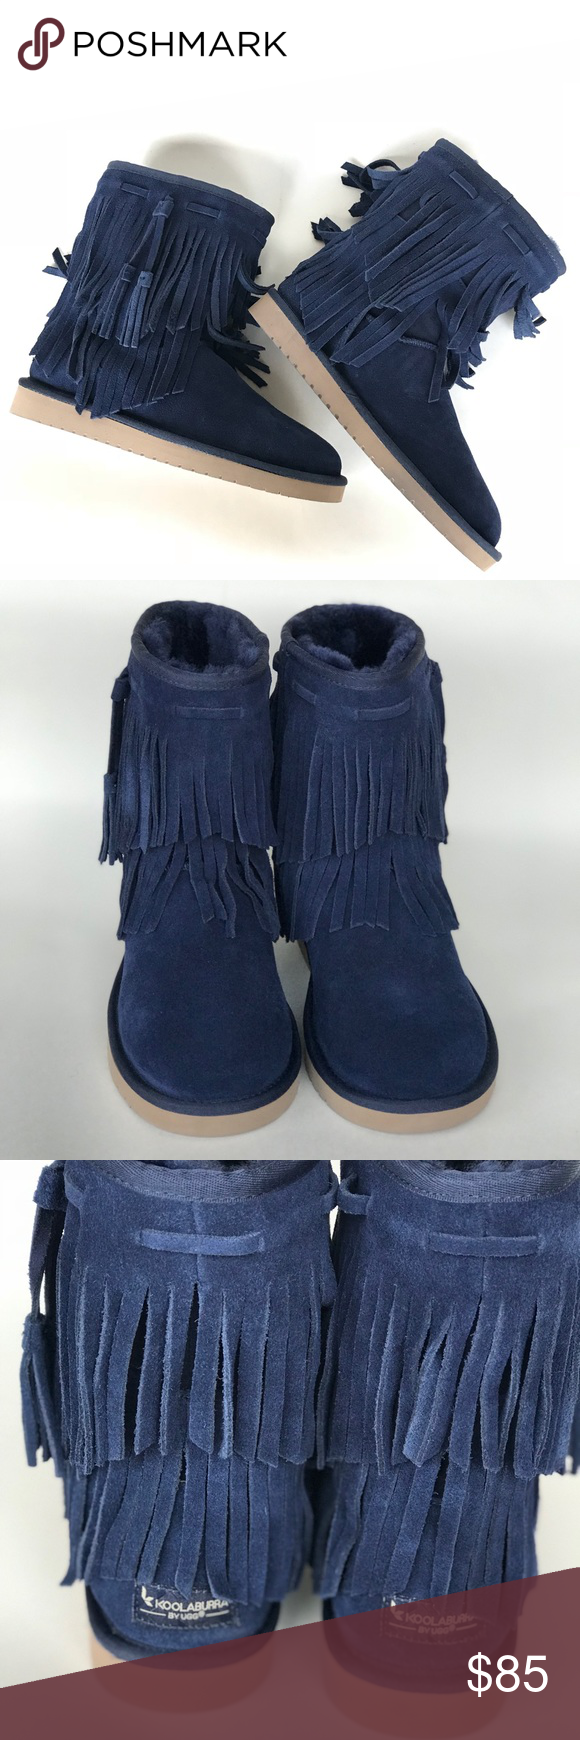 f0c43ac356f NWT KOOLABURRA BY UGG CABLE BOOTS SIZE 10 Brand new without box UGG ...